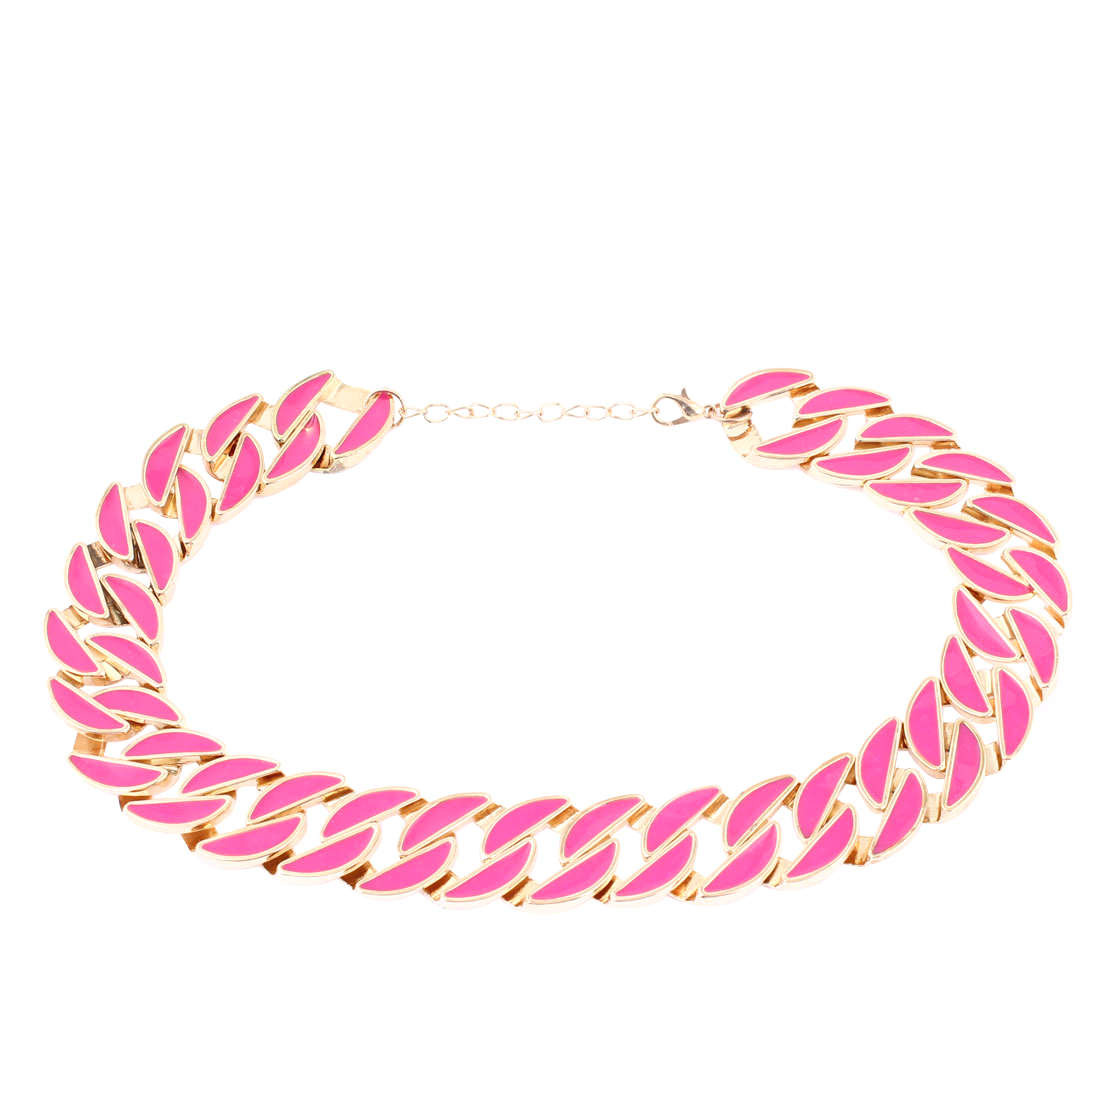 Adjustable Pendend Gold Tone Fuchsia Necklace 43cm Girth for Lady